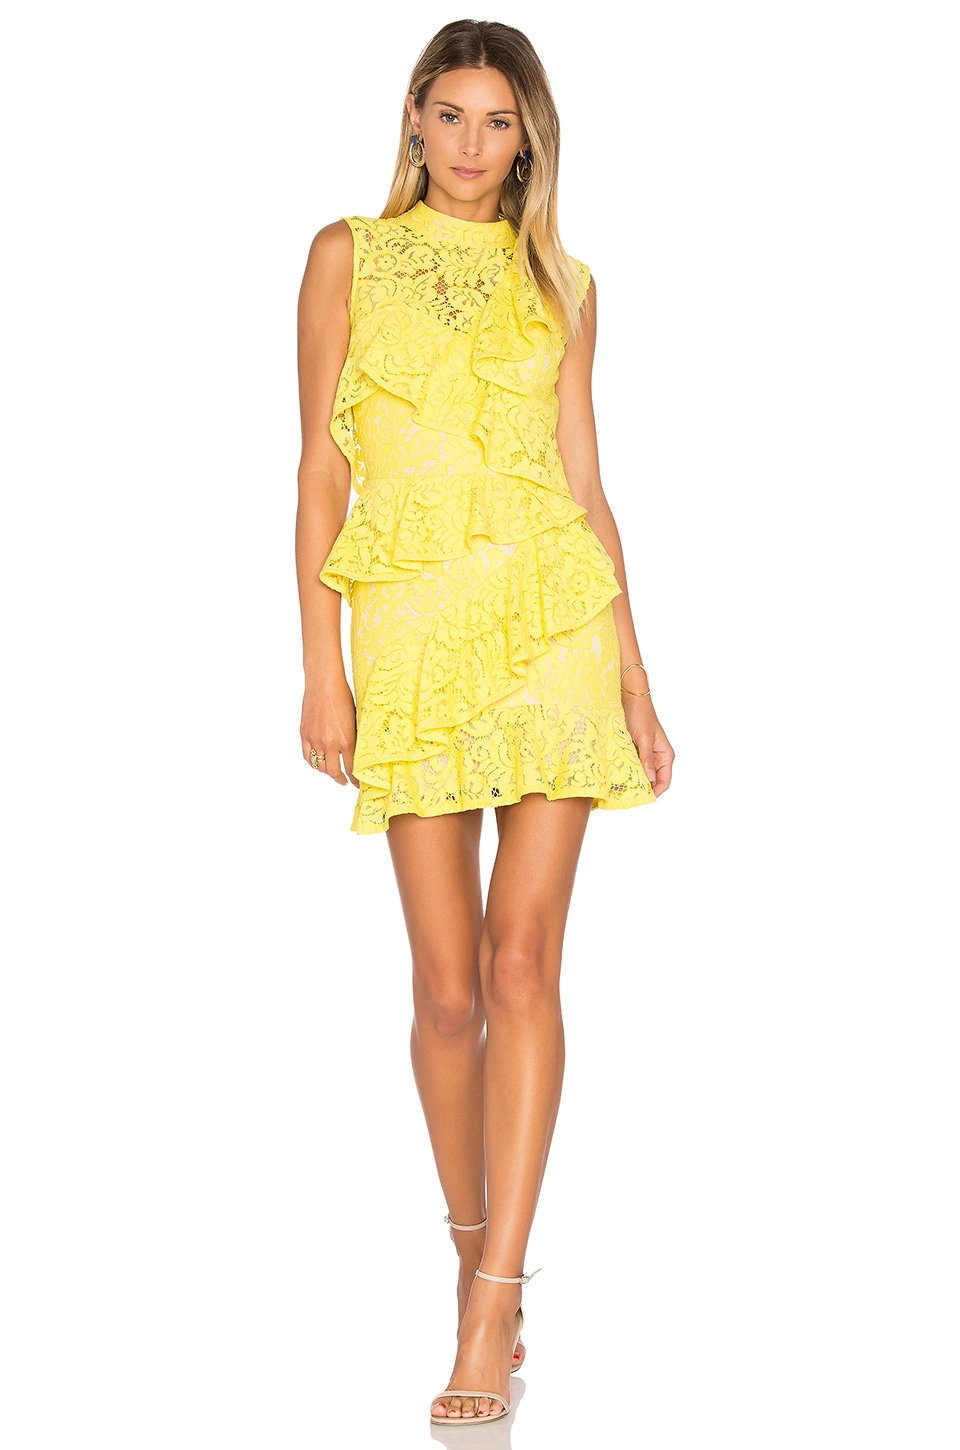 Rebecca Vallance Wilson Ra Ra Mini Dress in Zest